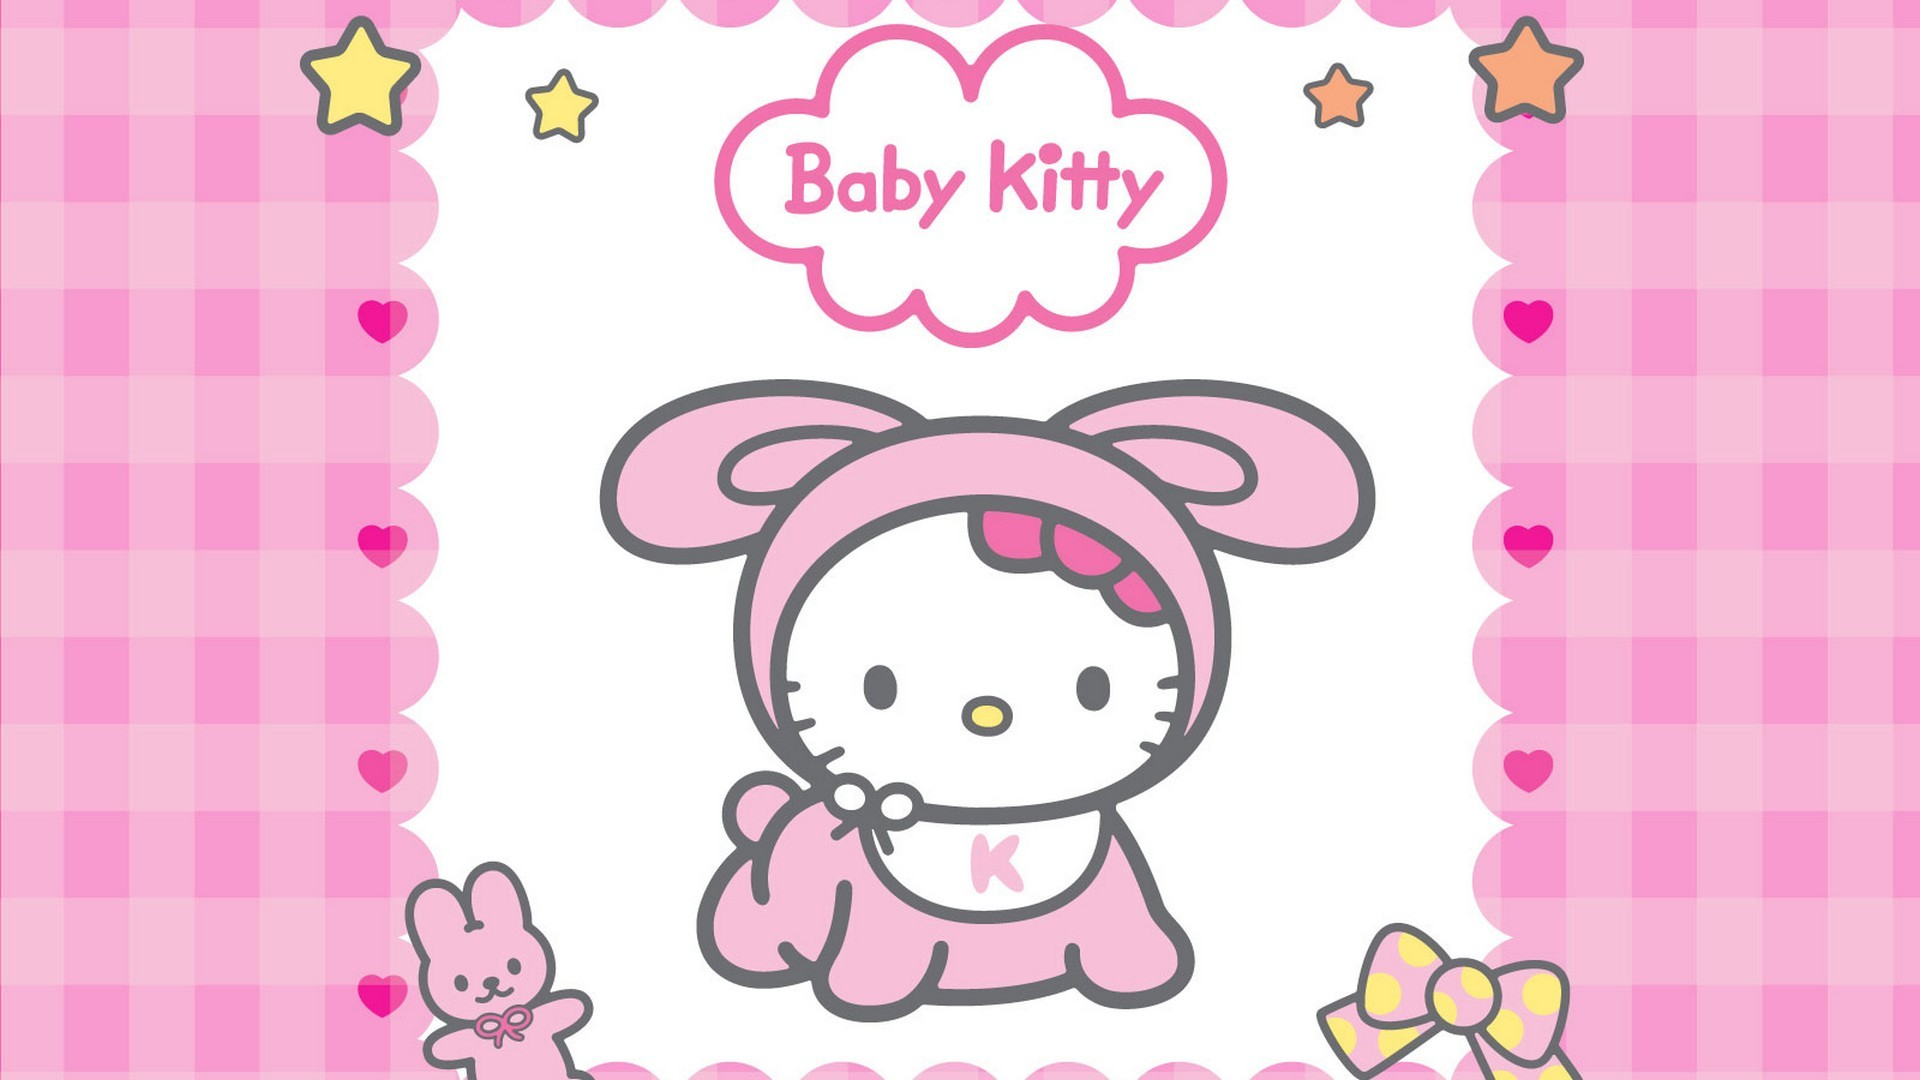 1920x1080 Hello Kitty Background Wallpaper HD with image resolution  pixel.  You can make this wallpaper